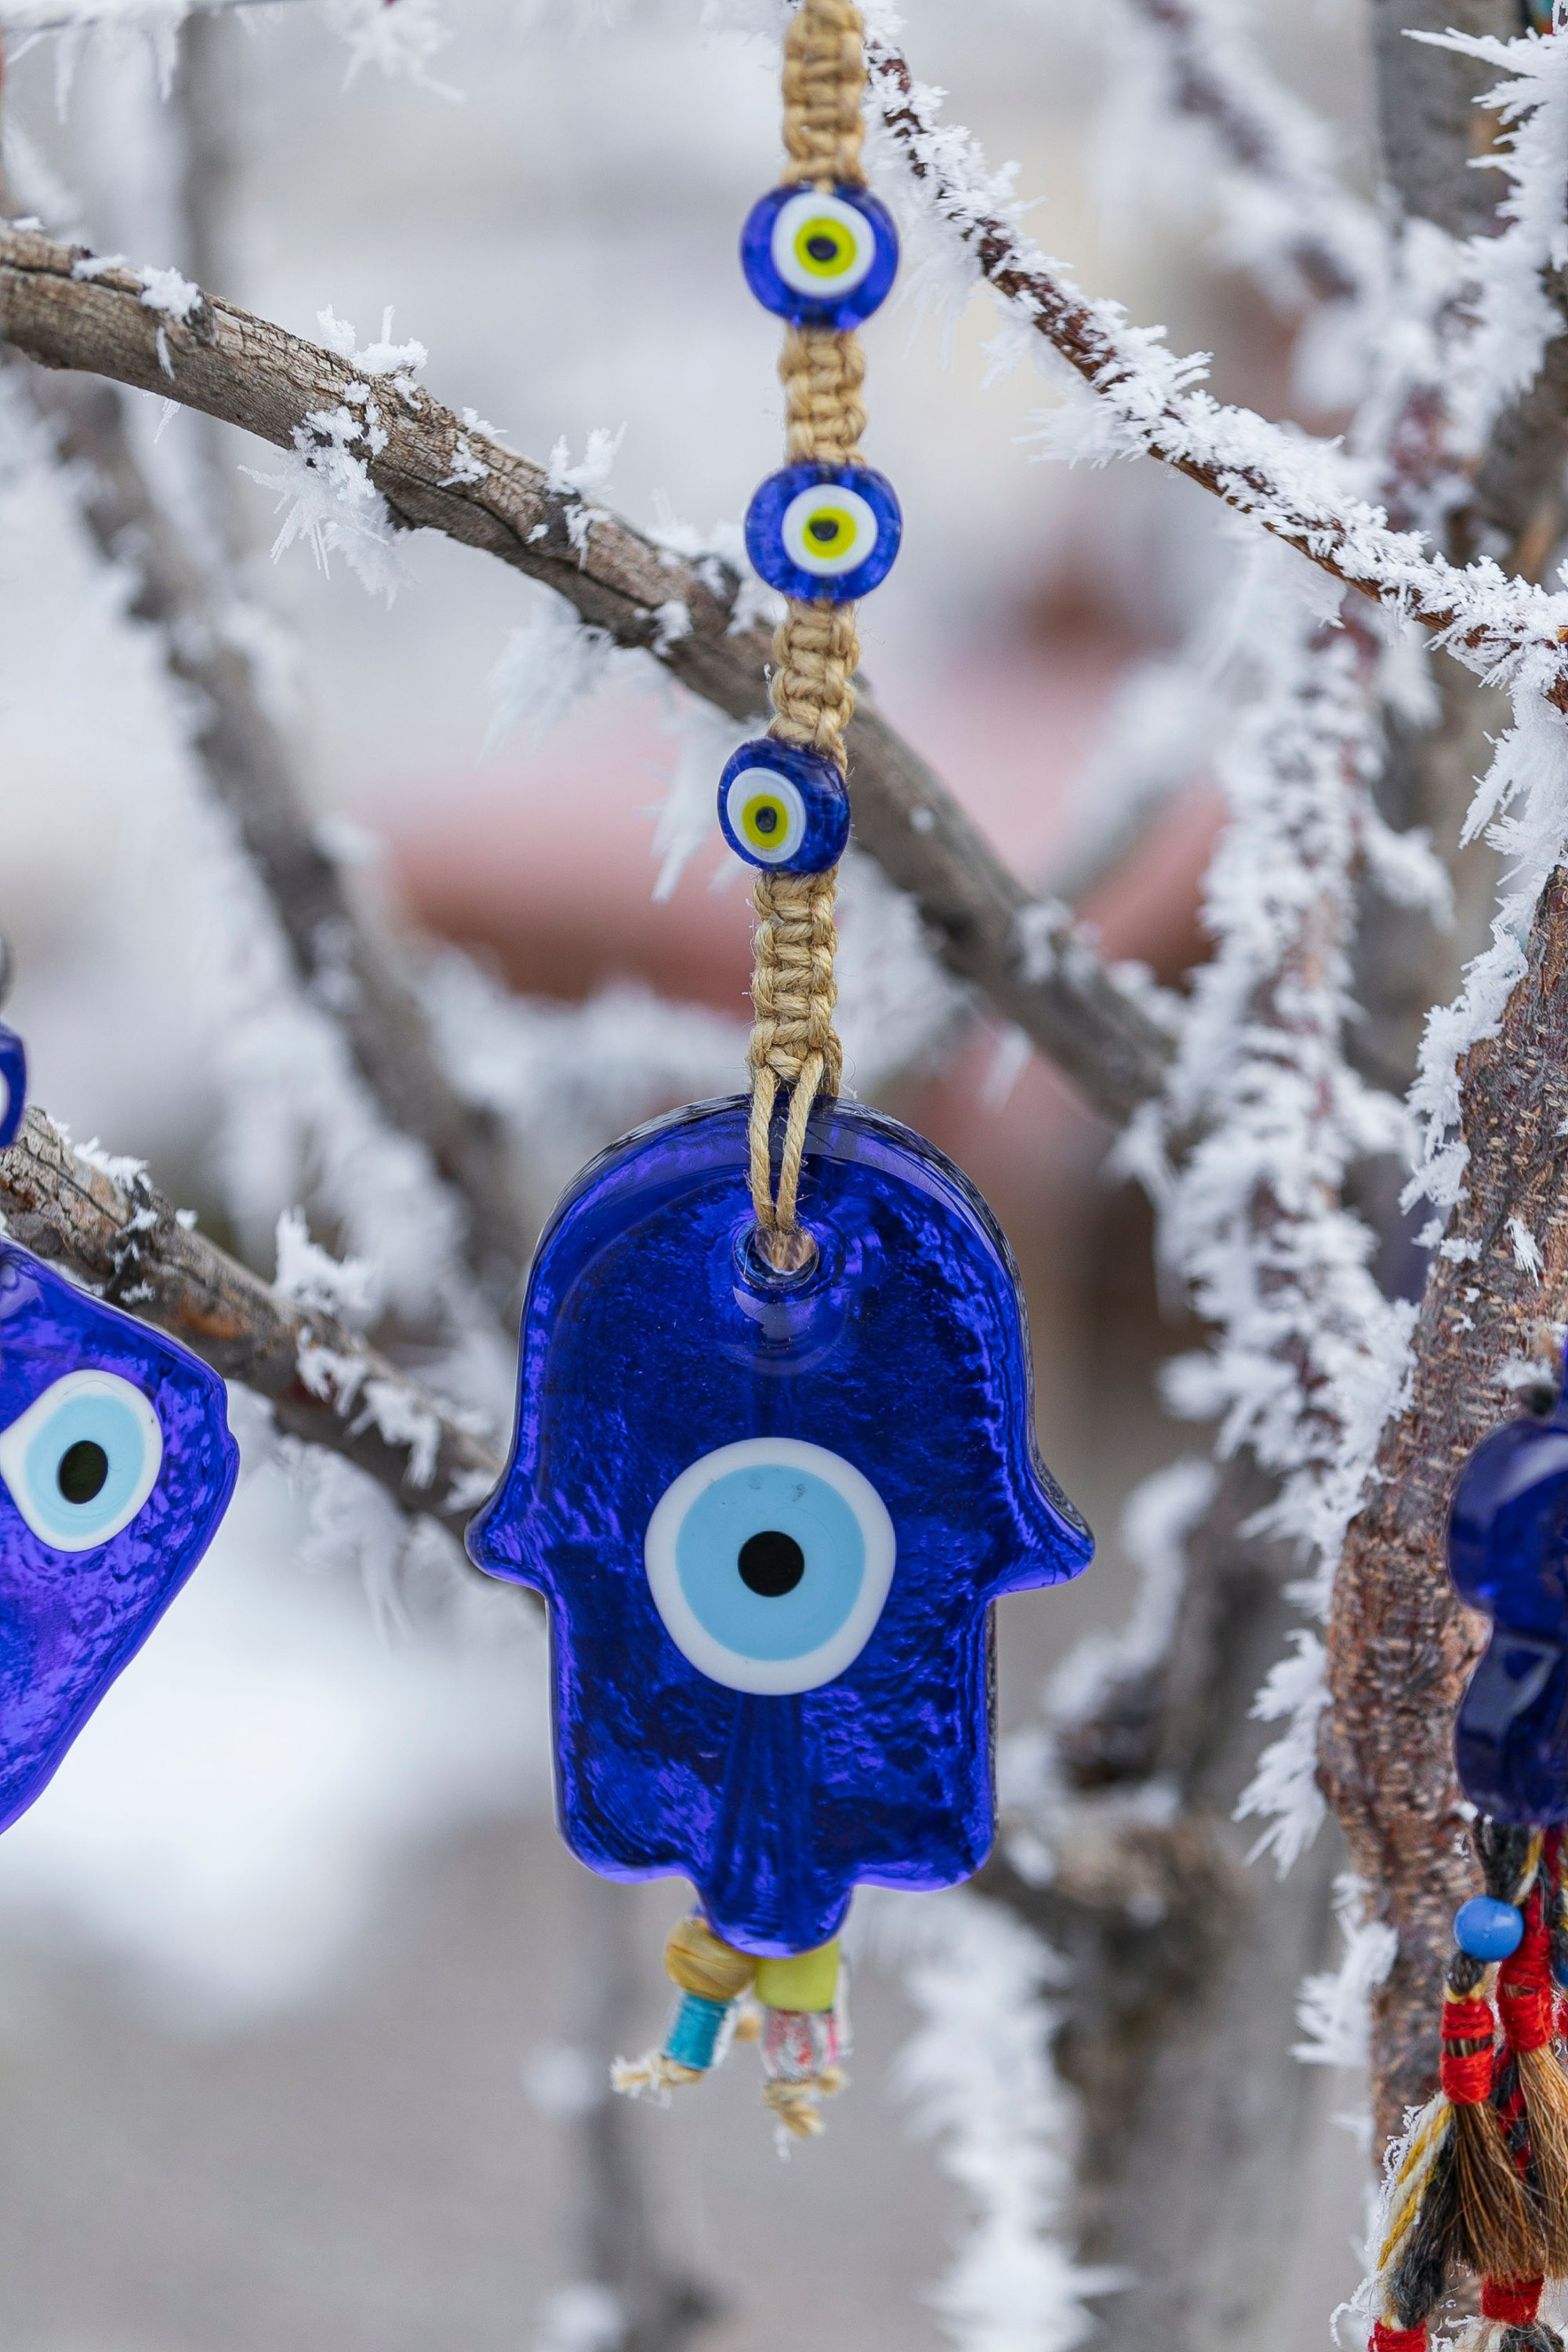 A small safety pin with a blue evil eye bead (or nazar boncuğu in Turkish) is always atatchjed to newborn babies' clothes. (Shutterstock Photo)